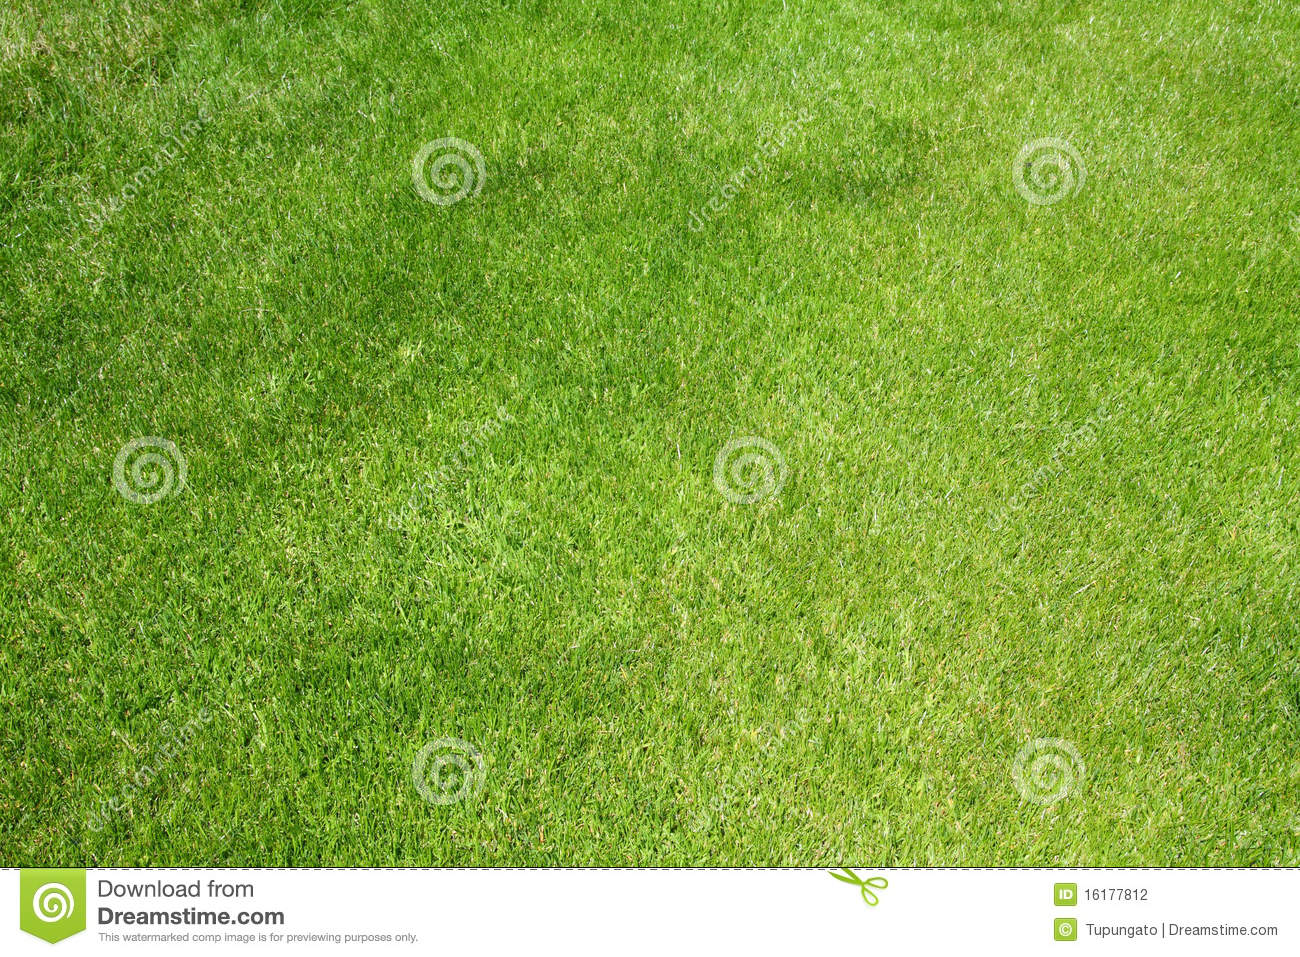 Golf grass stock photo. Image of grass, course, background ...